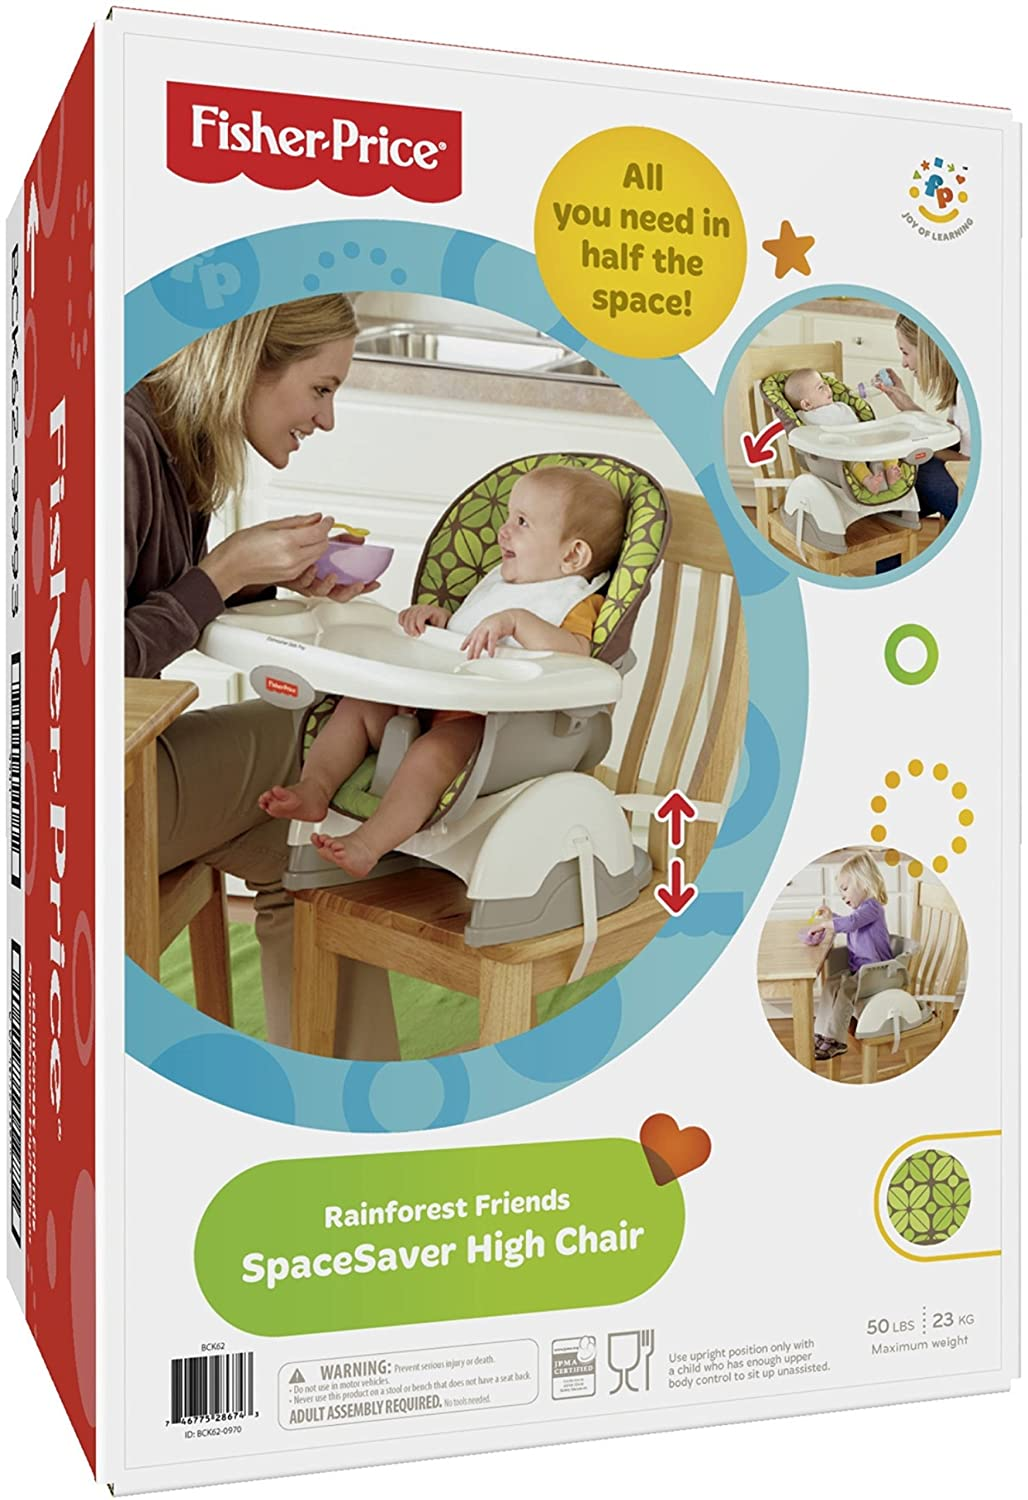 fisher price high chair space saver reviews. amazon.com : fisher-price spacesaver high chair, rainforest friends childrens highchairs baby fisher price chair space saver reviews